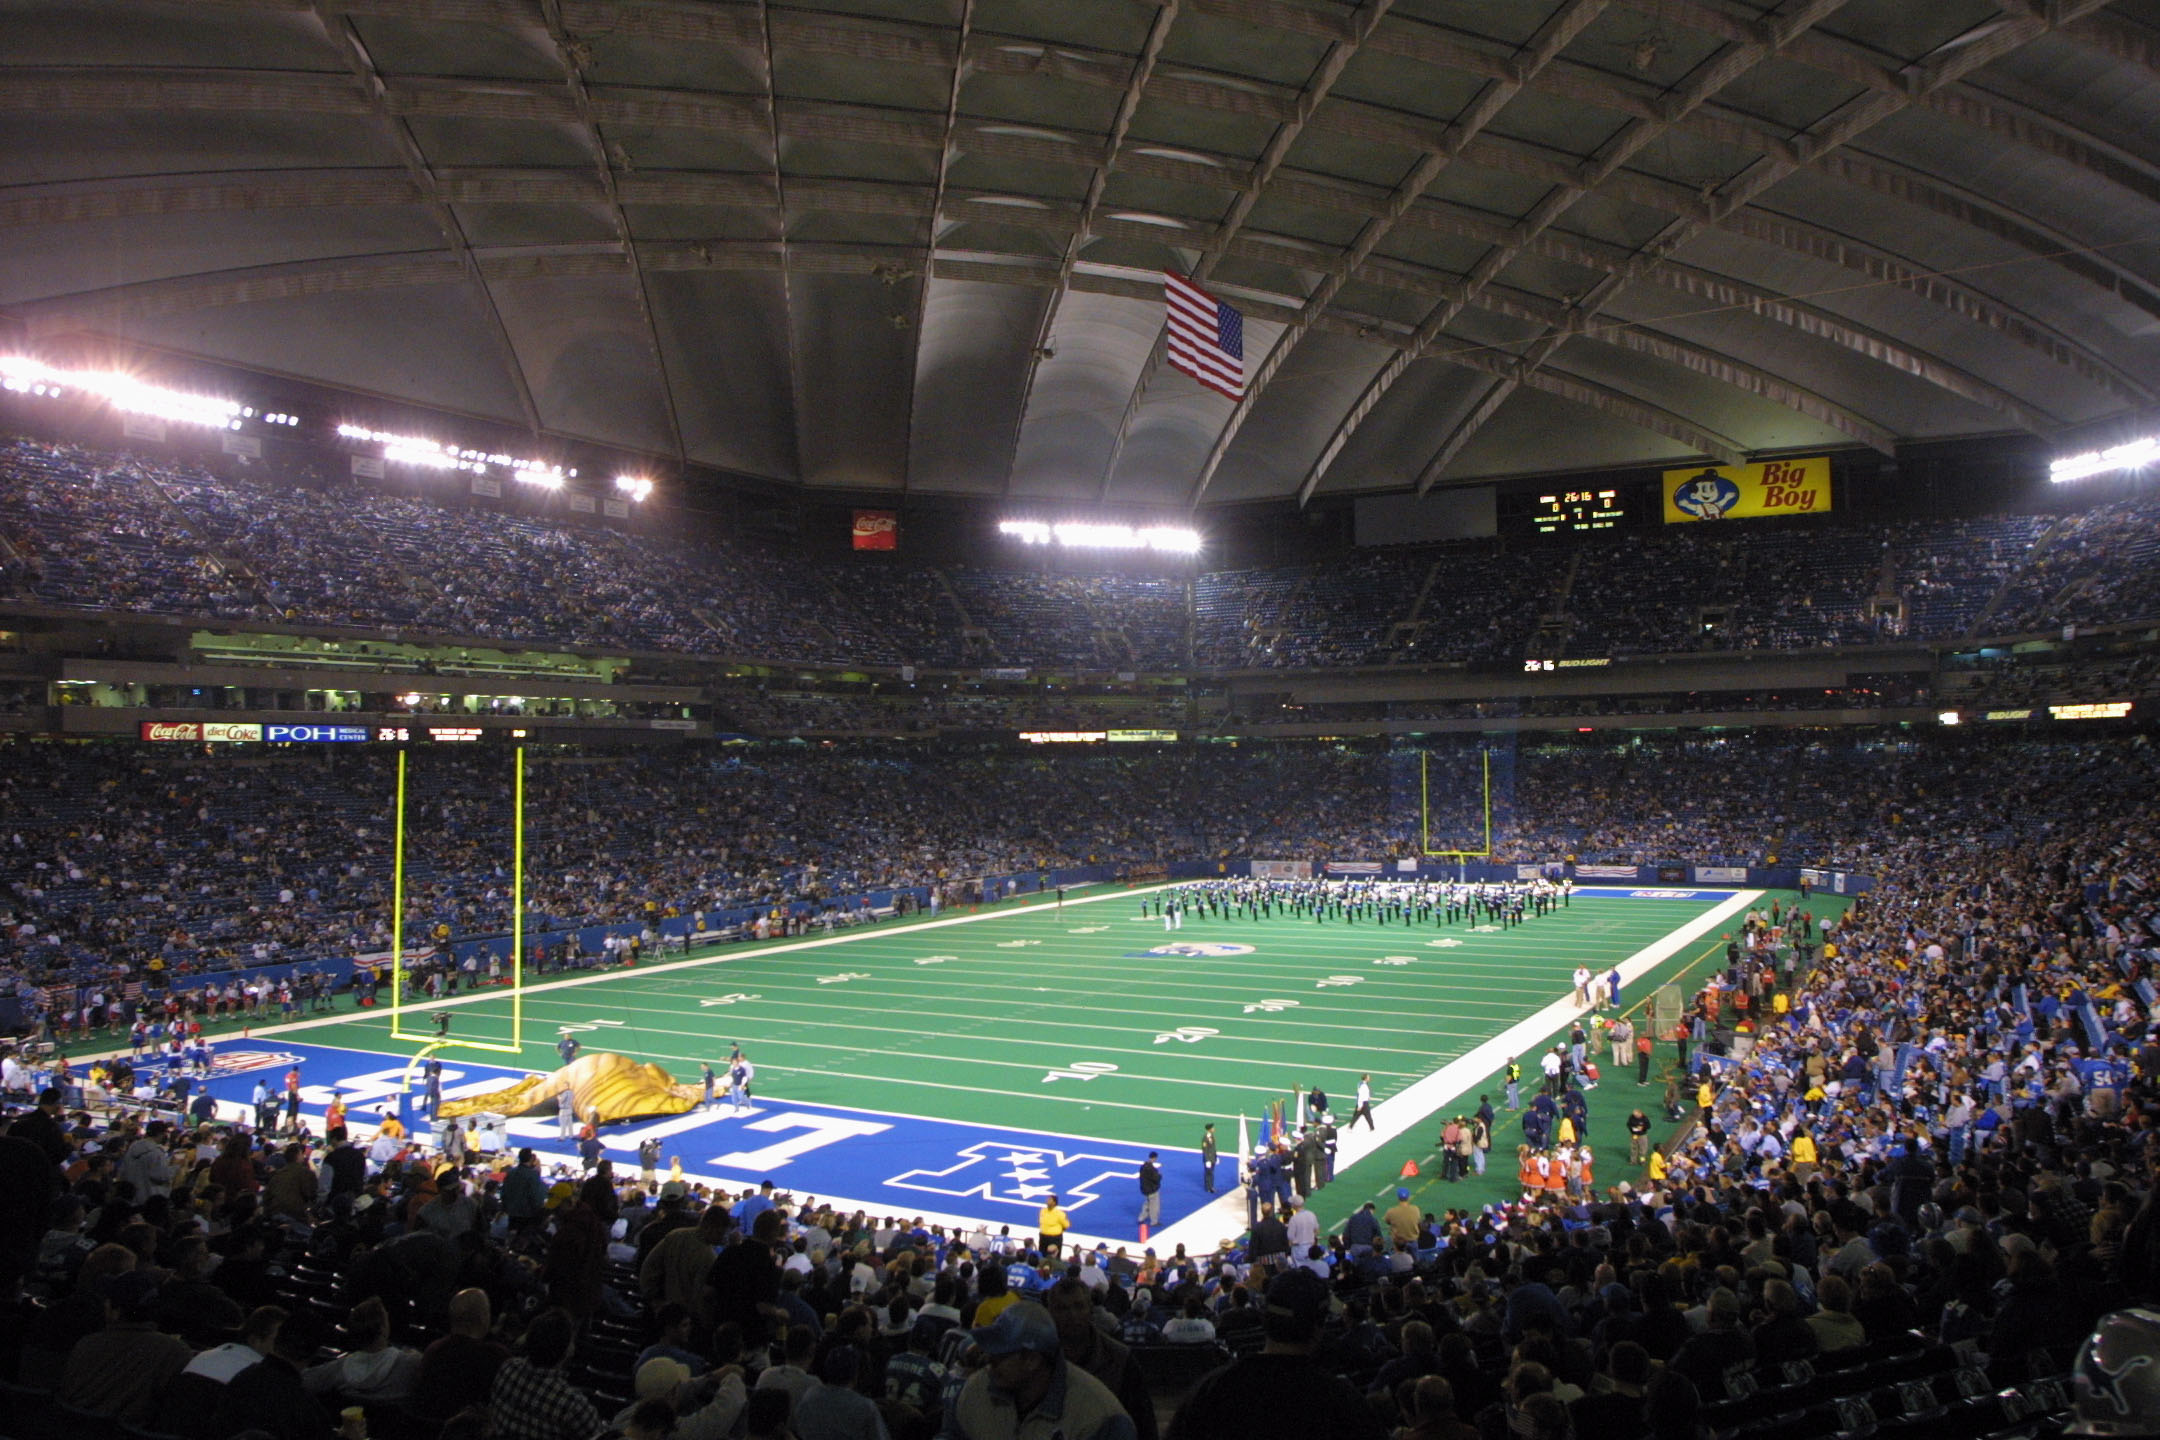 Usually played in the southern latitudes, where the weather is warmer in January and February, the Super Bowl has been played in northerly stadiums three times in its history so far, the first in 1982, when the Pontiac Silverdome played host to the big game. Opened in 1975 and home of the Detroit Lions until 2001, the stadium fell into disuse when the Lions left for Ford Field; it was sold in 2009 for $583,000.